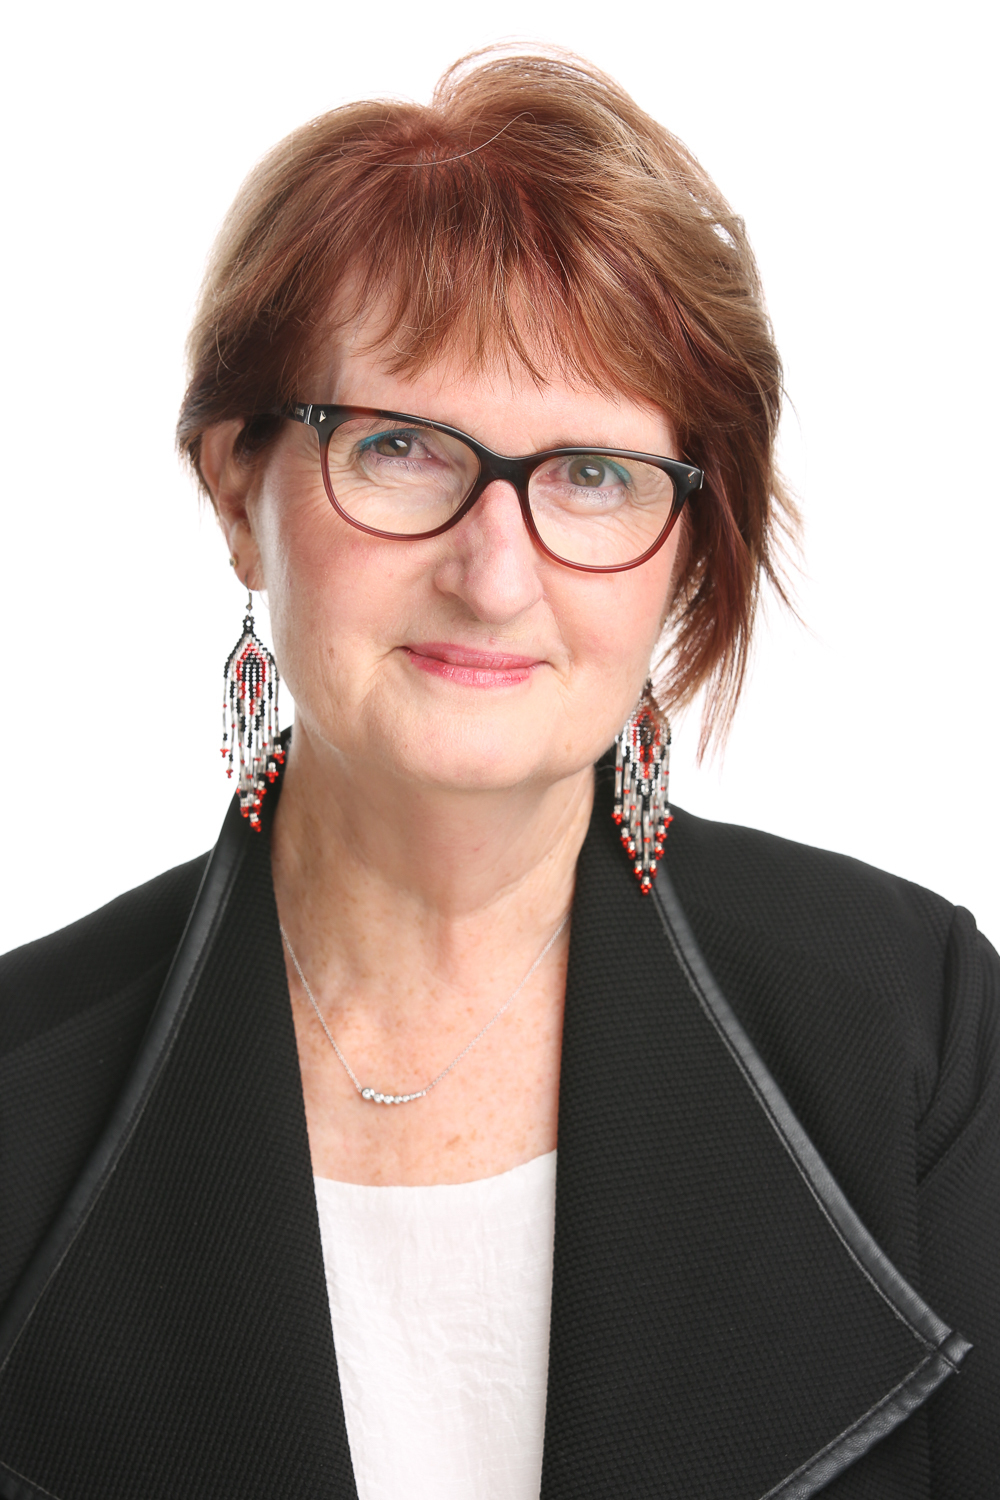 NSW Mental Health Commissioner Catherine Lourey